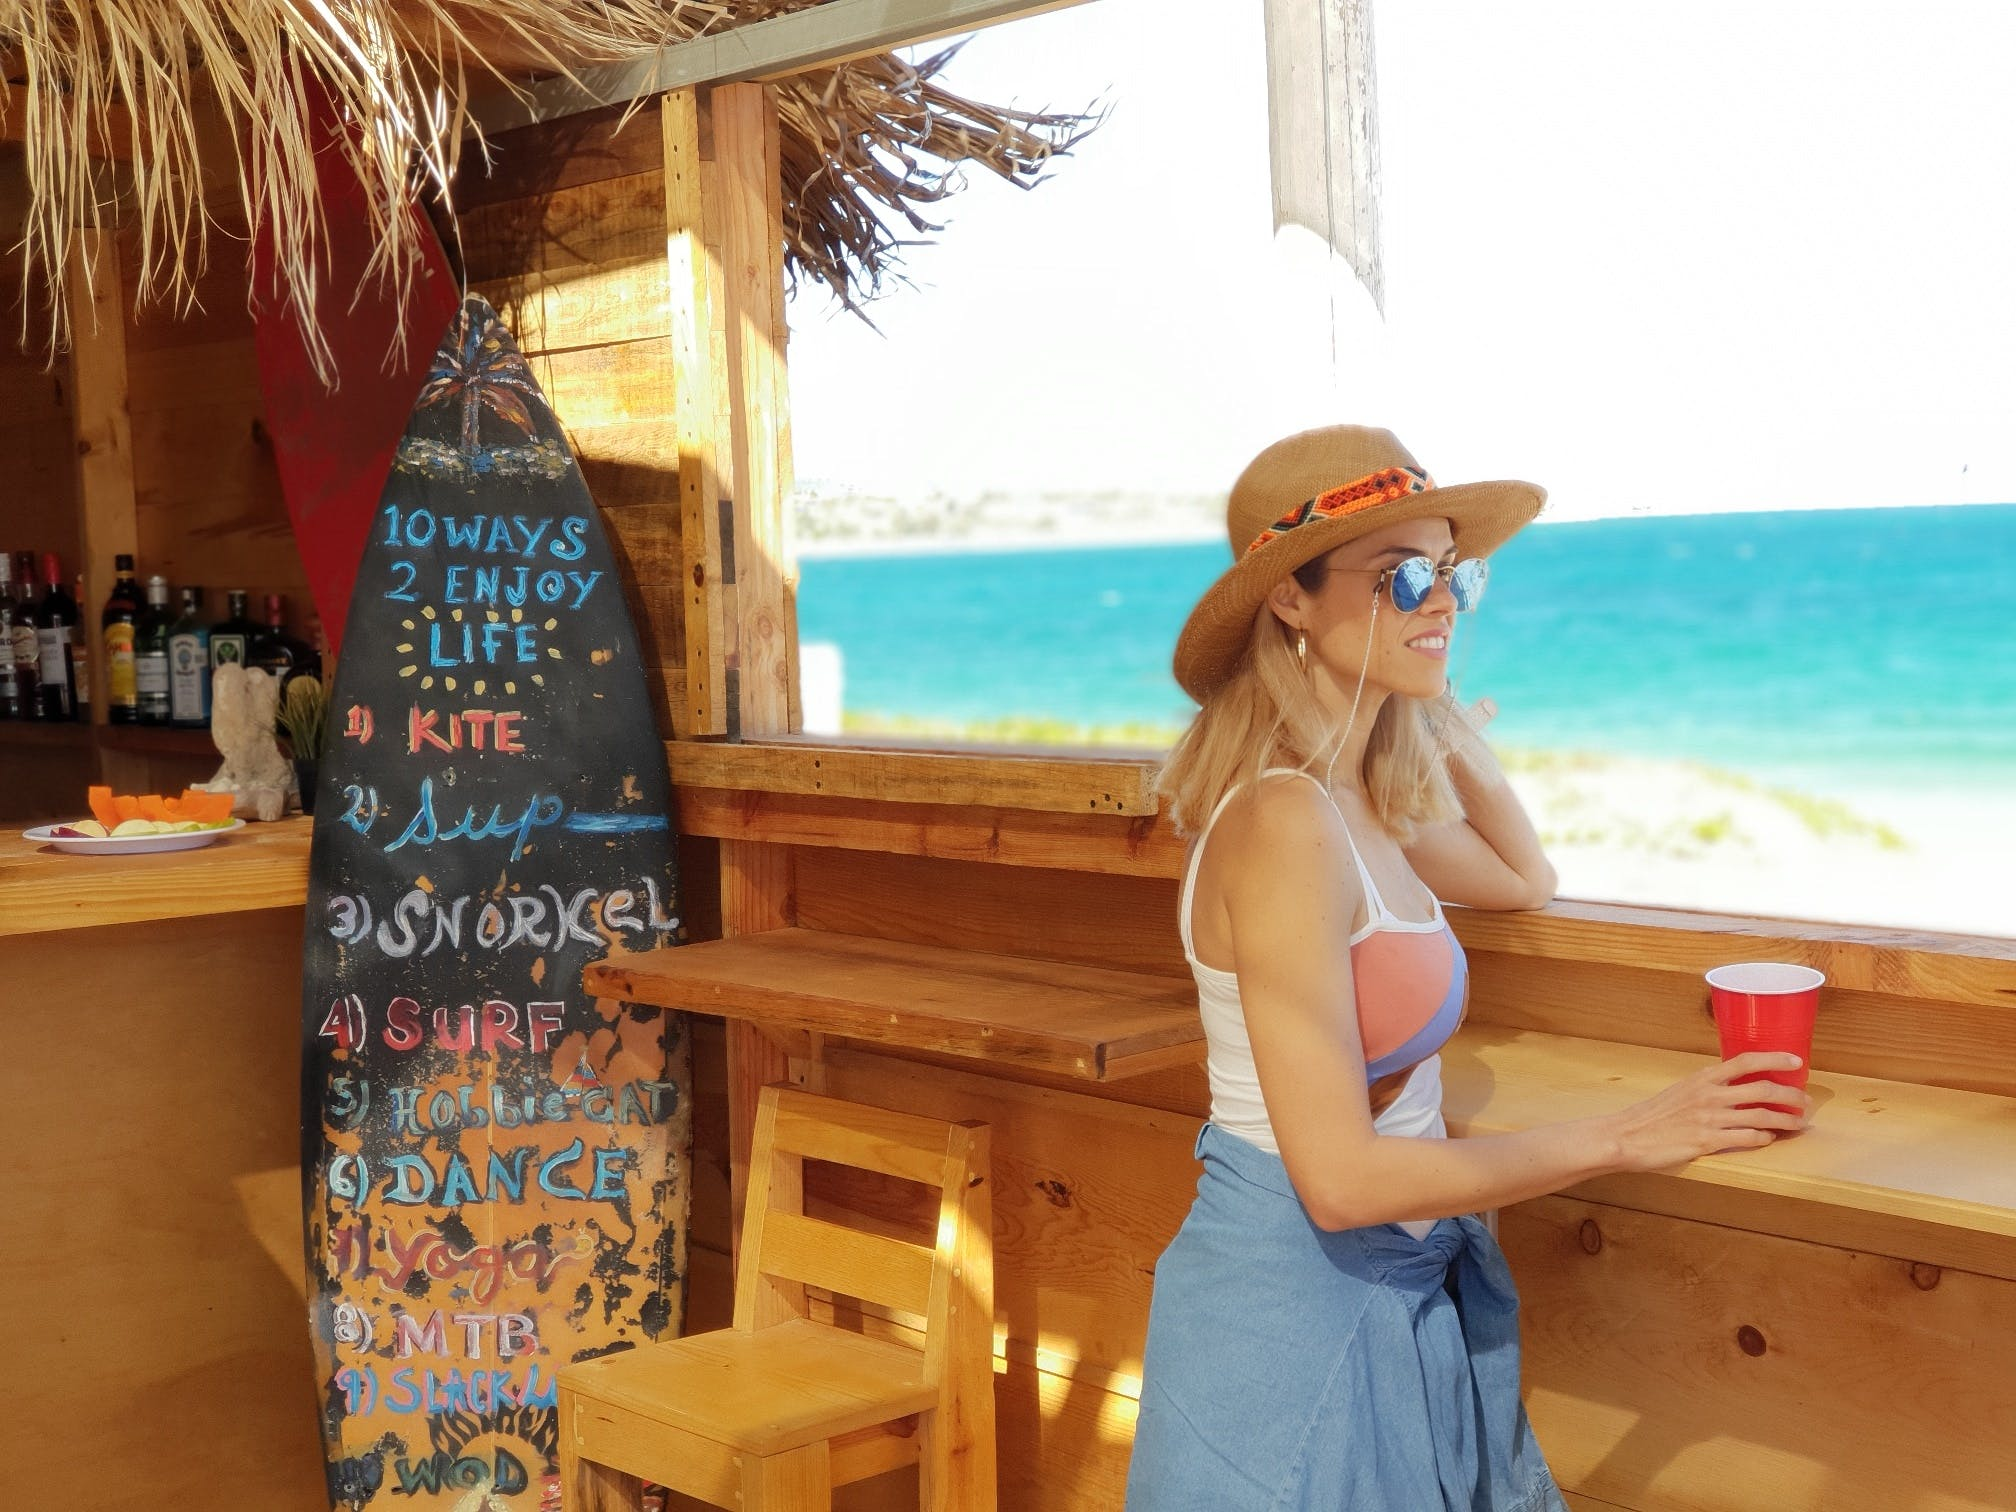 tasty beers and snacks in Beach Club in La Ventana, ChiloChill.